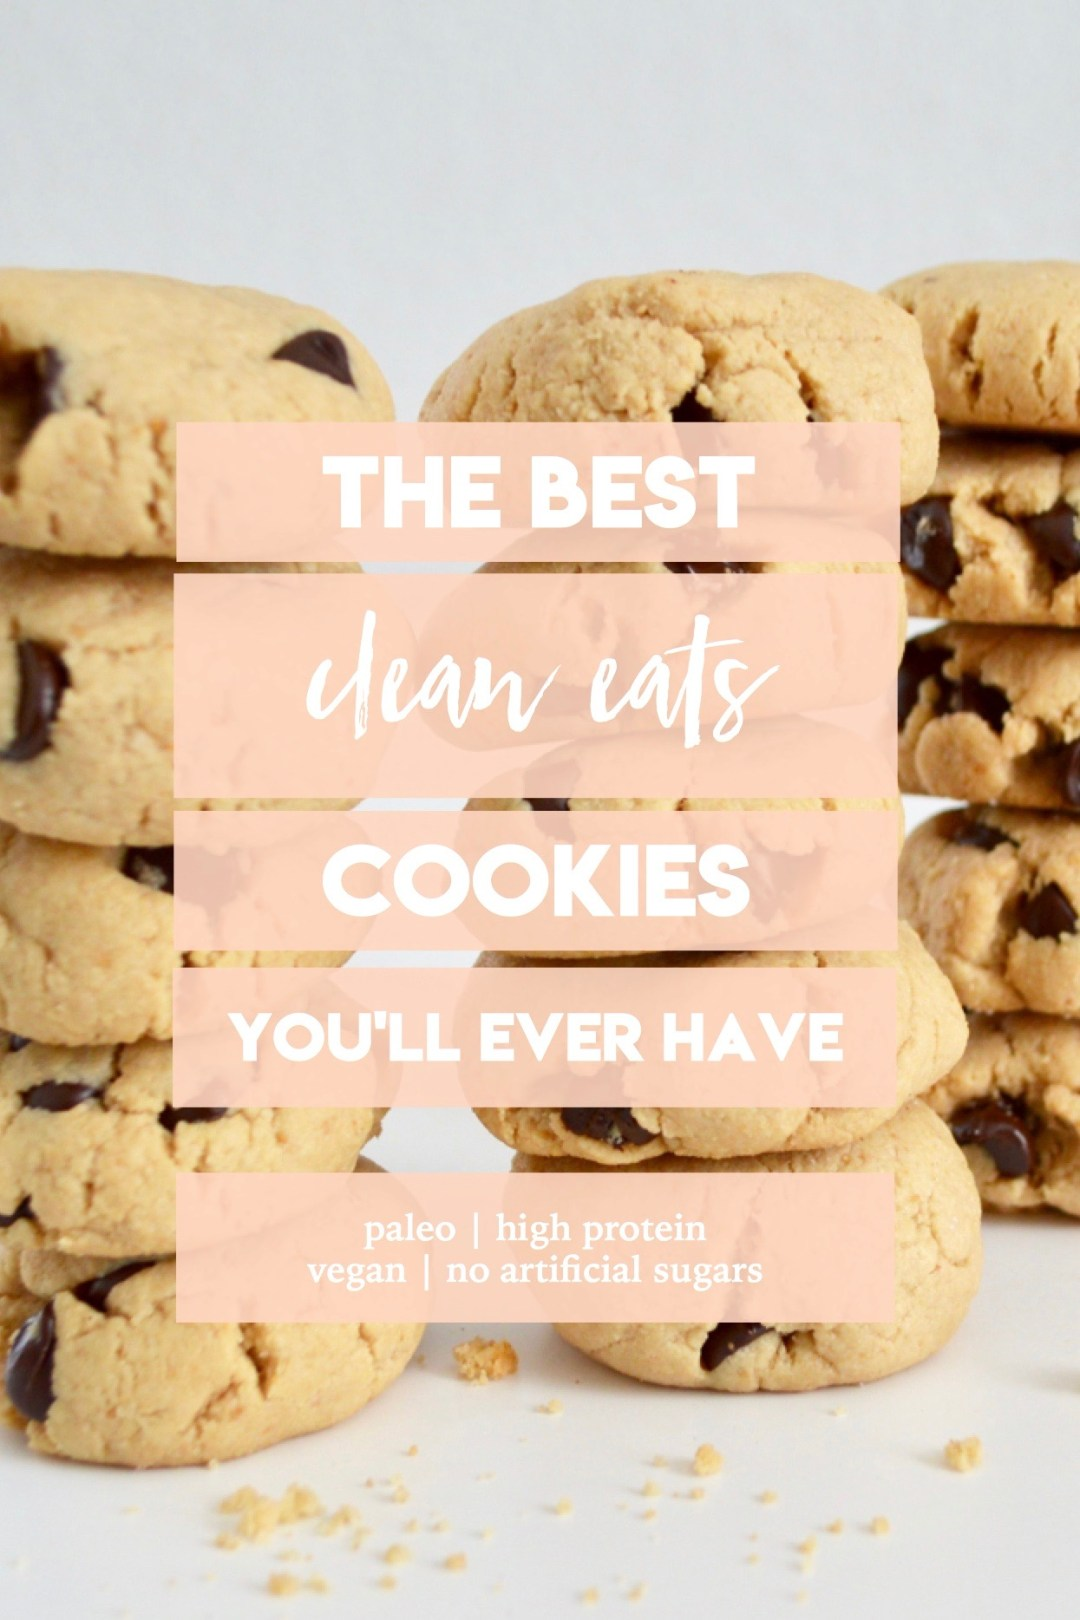 Made of simple, nutritious ingredients, these cookies are beyond delicious and an indulgence you can feel good about! | paleo, vegan, grain free, dairy free, gluten free, refined sugar free